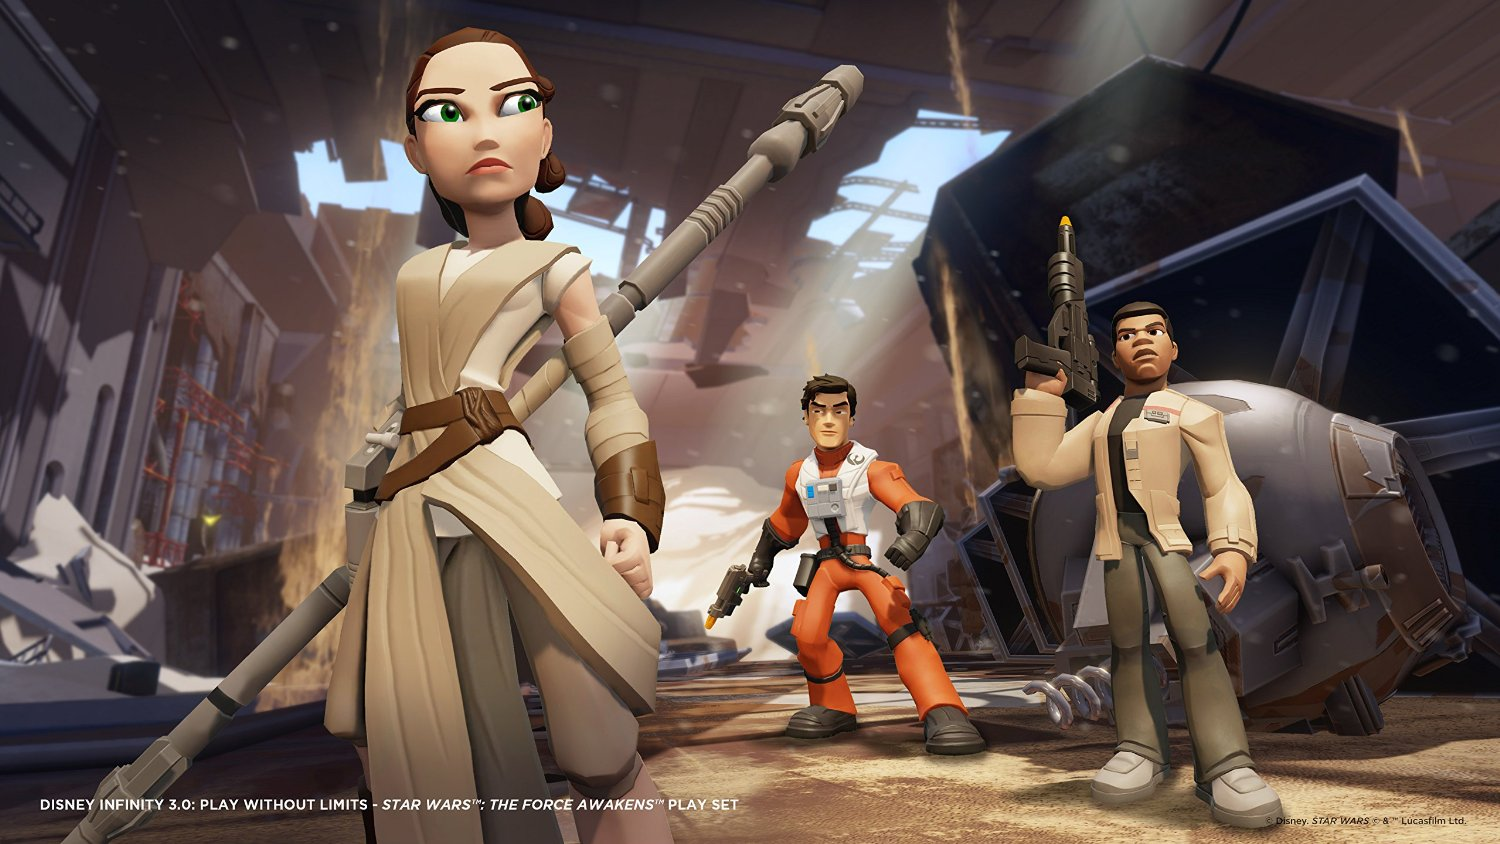 Disney Infinite 3.0 Star Wars Episode VII : Le Réveil De La Force